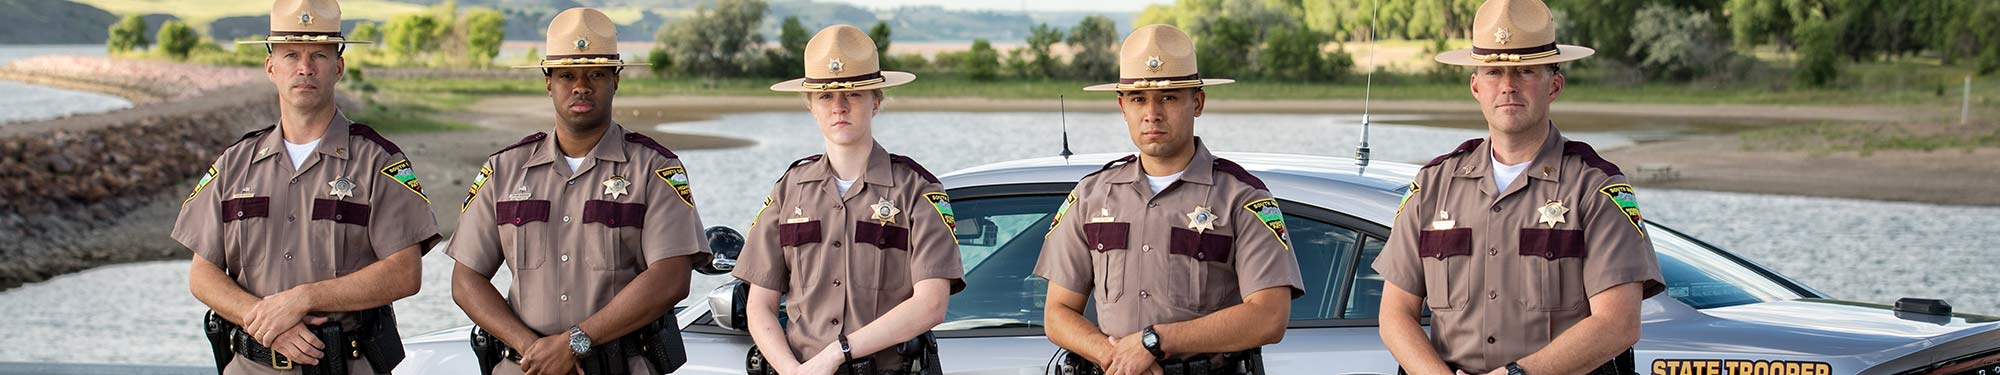 South Dakota Highway Patrol | SD DPS